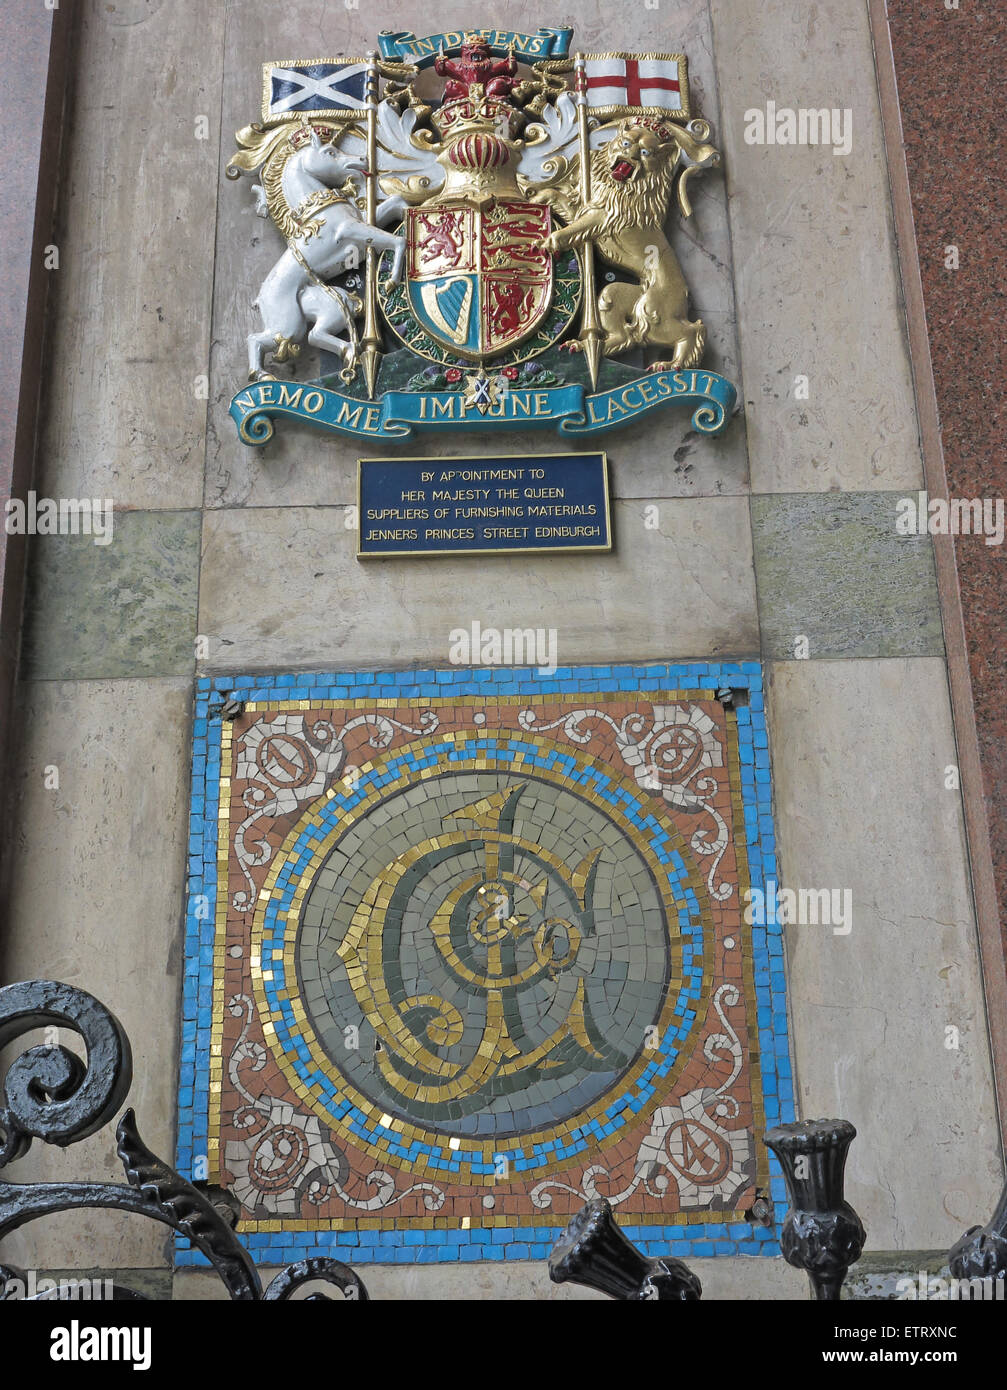 Jenners Department Store Princes St Edinburgh Scotland UK - Royal appointment crest and logo - Stock Image